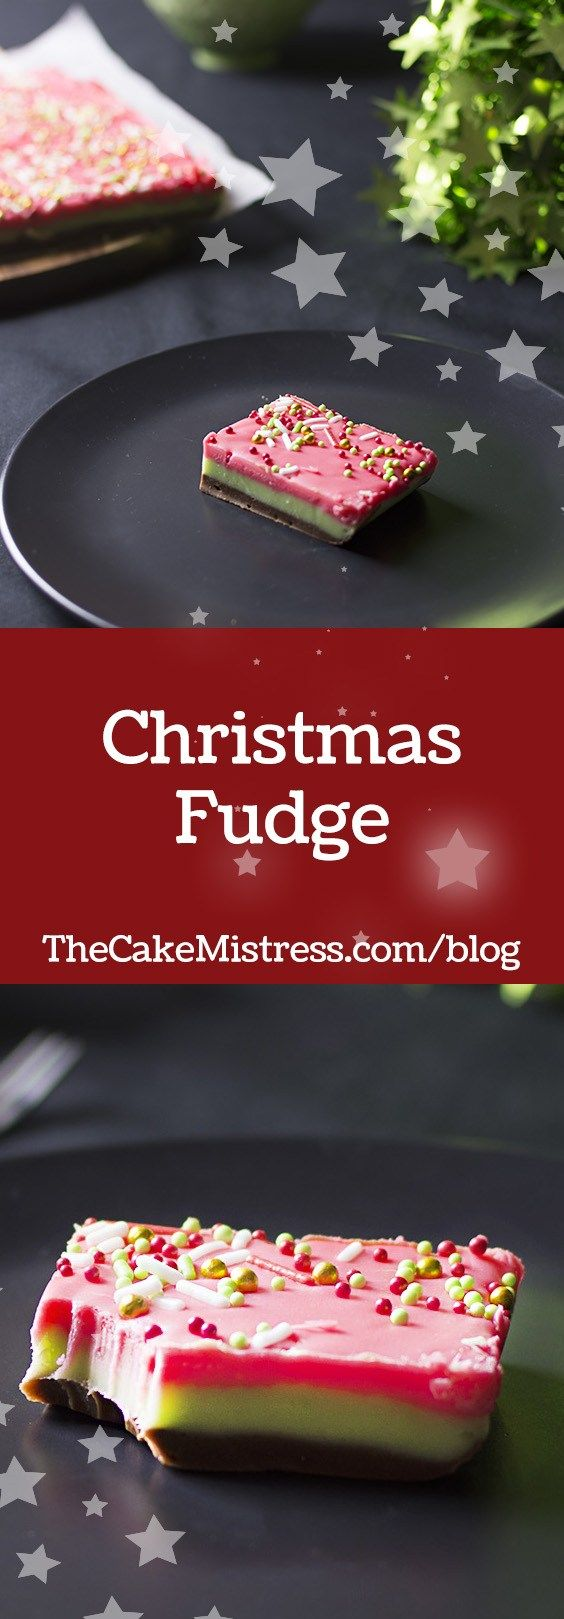 This triple layer Christmas Fudge is flavoured with dark chocolate and peppermint and topped with festive sprinkles. So easy! #christmas #baking #fudge